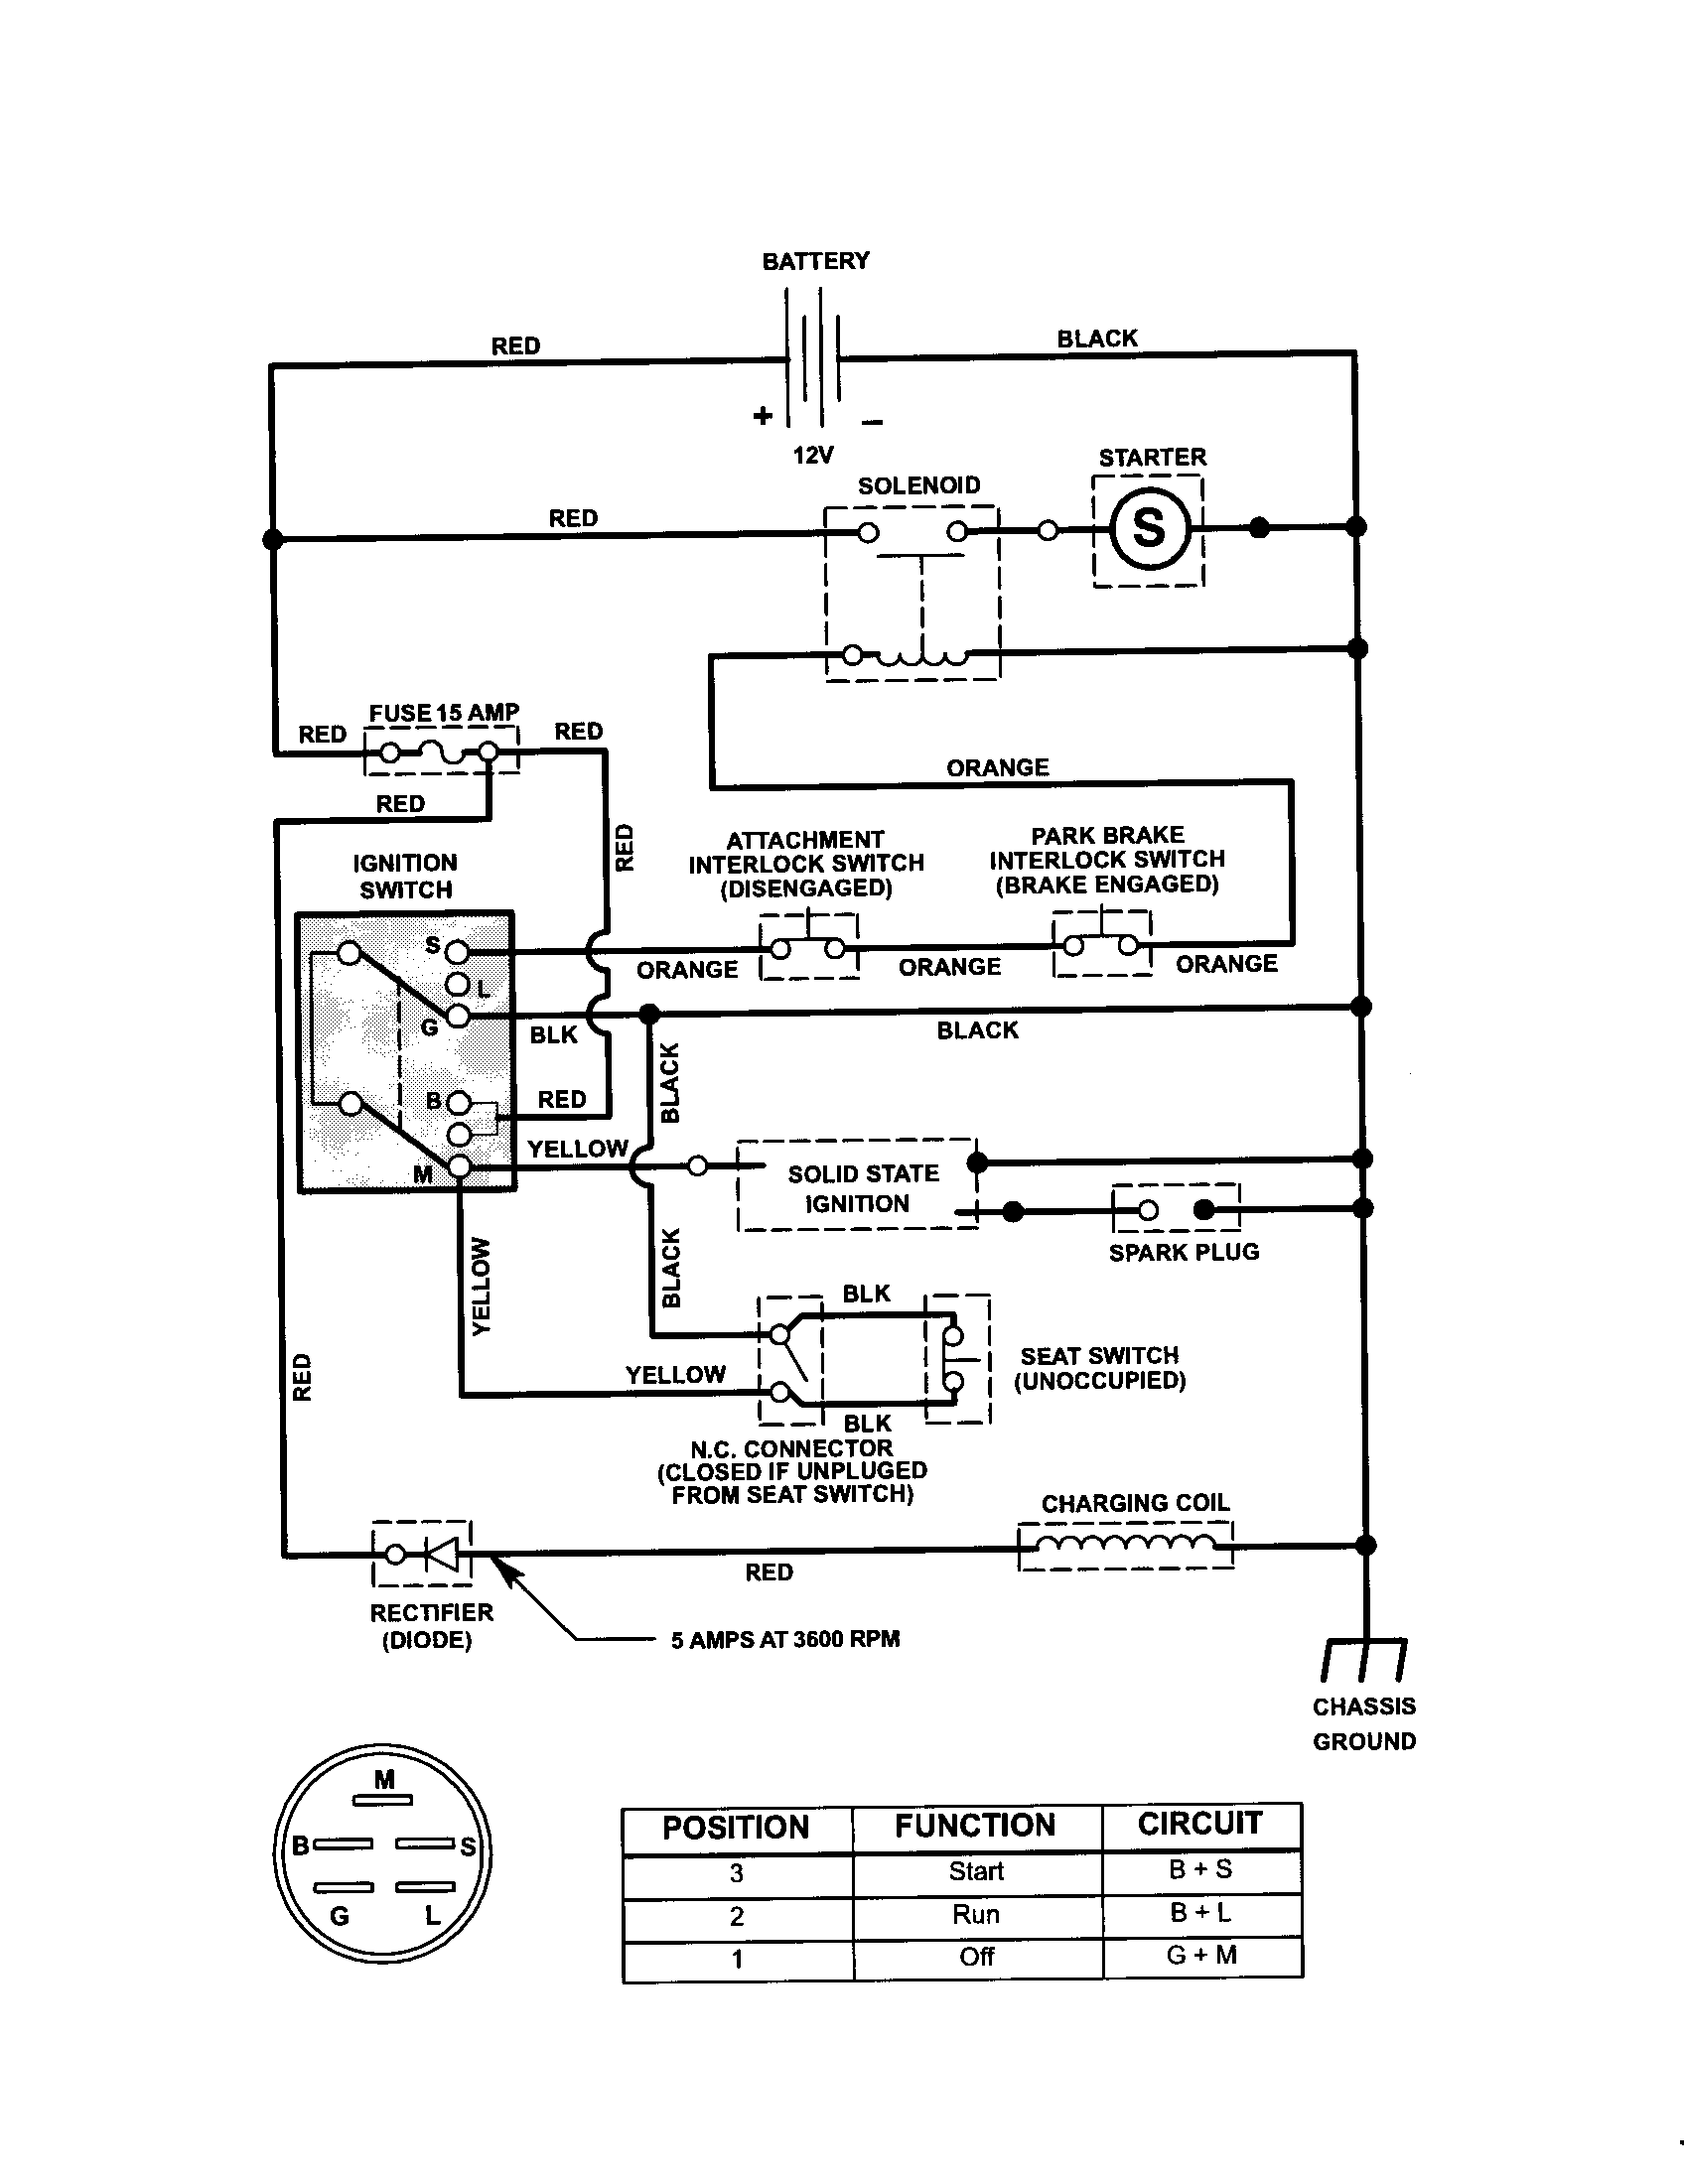 lt1000 wiring diagram wiring diagram databasewiring diagram for lt1000 wiring diagram experts craftsman tractor wiring diagram wiring diagram experts craftsman wiring